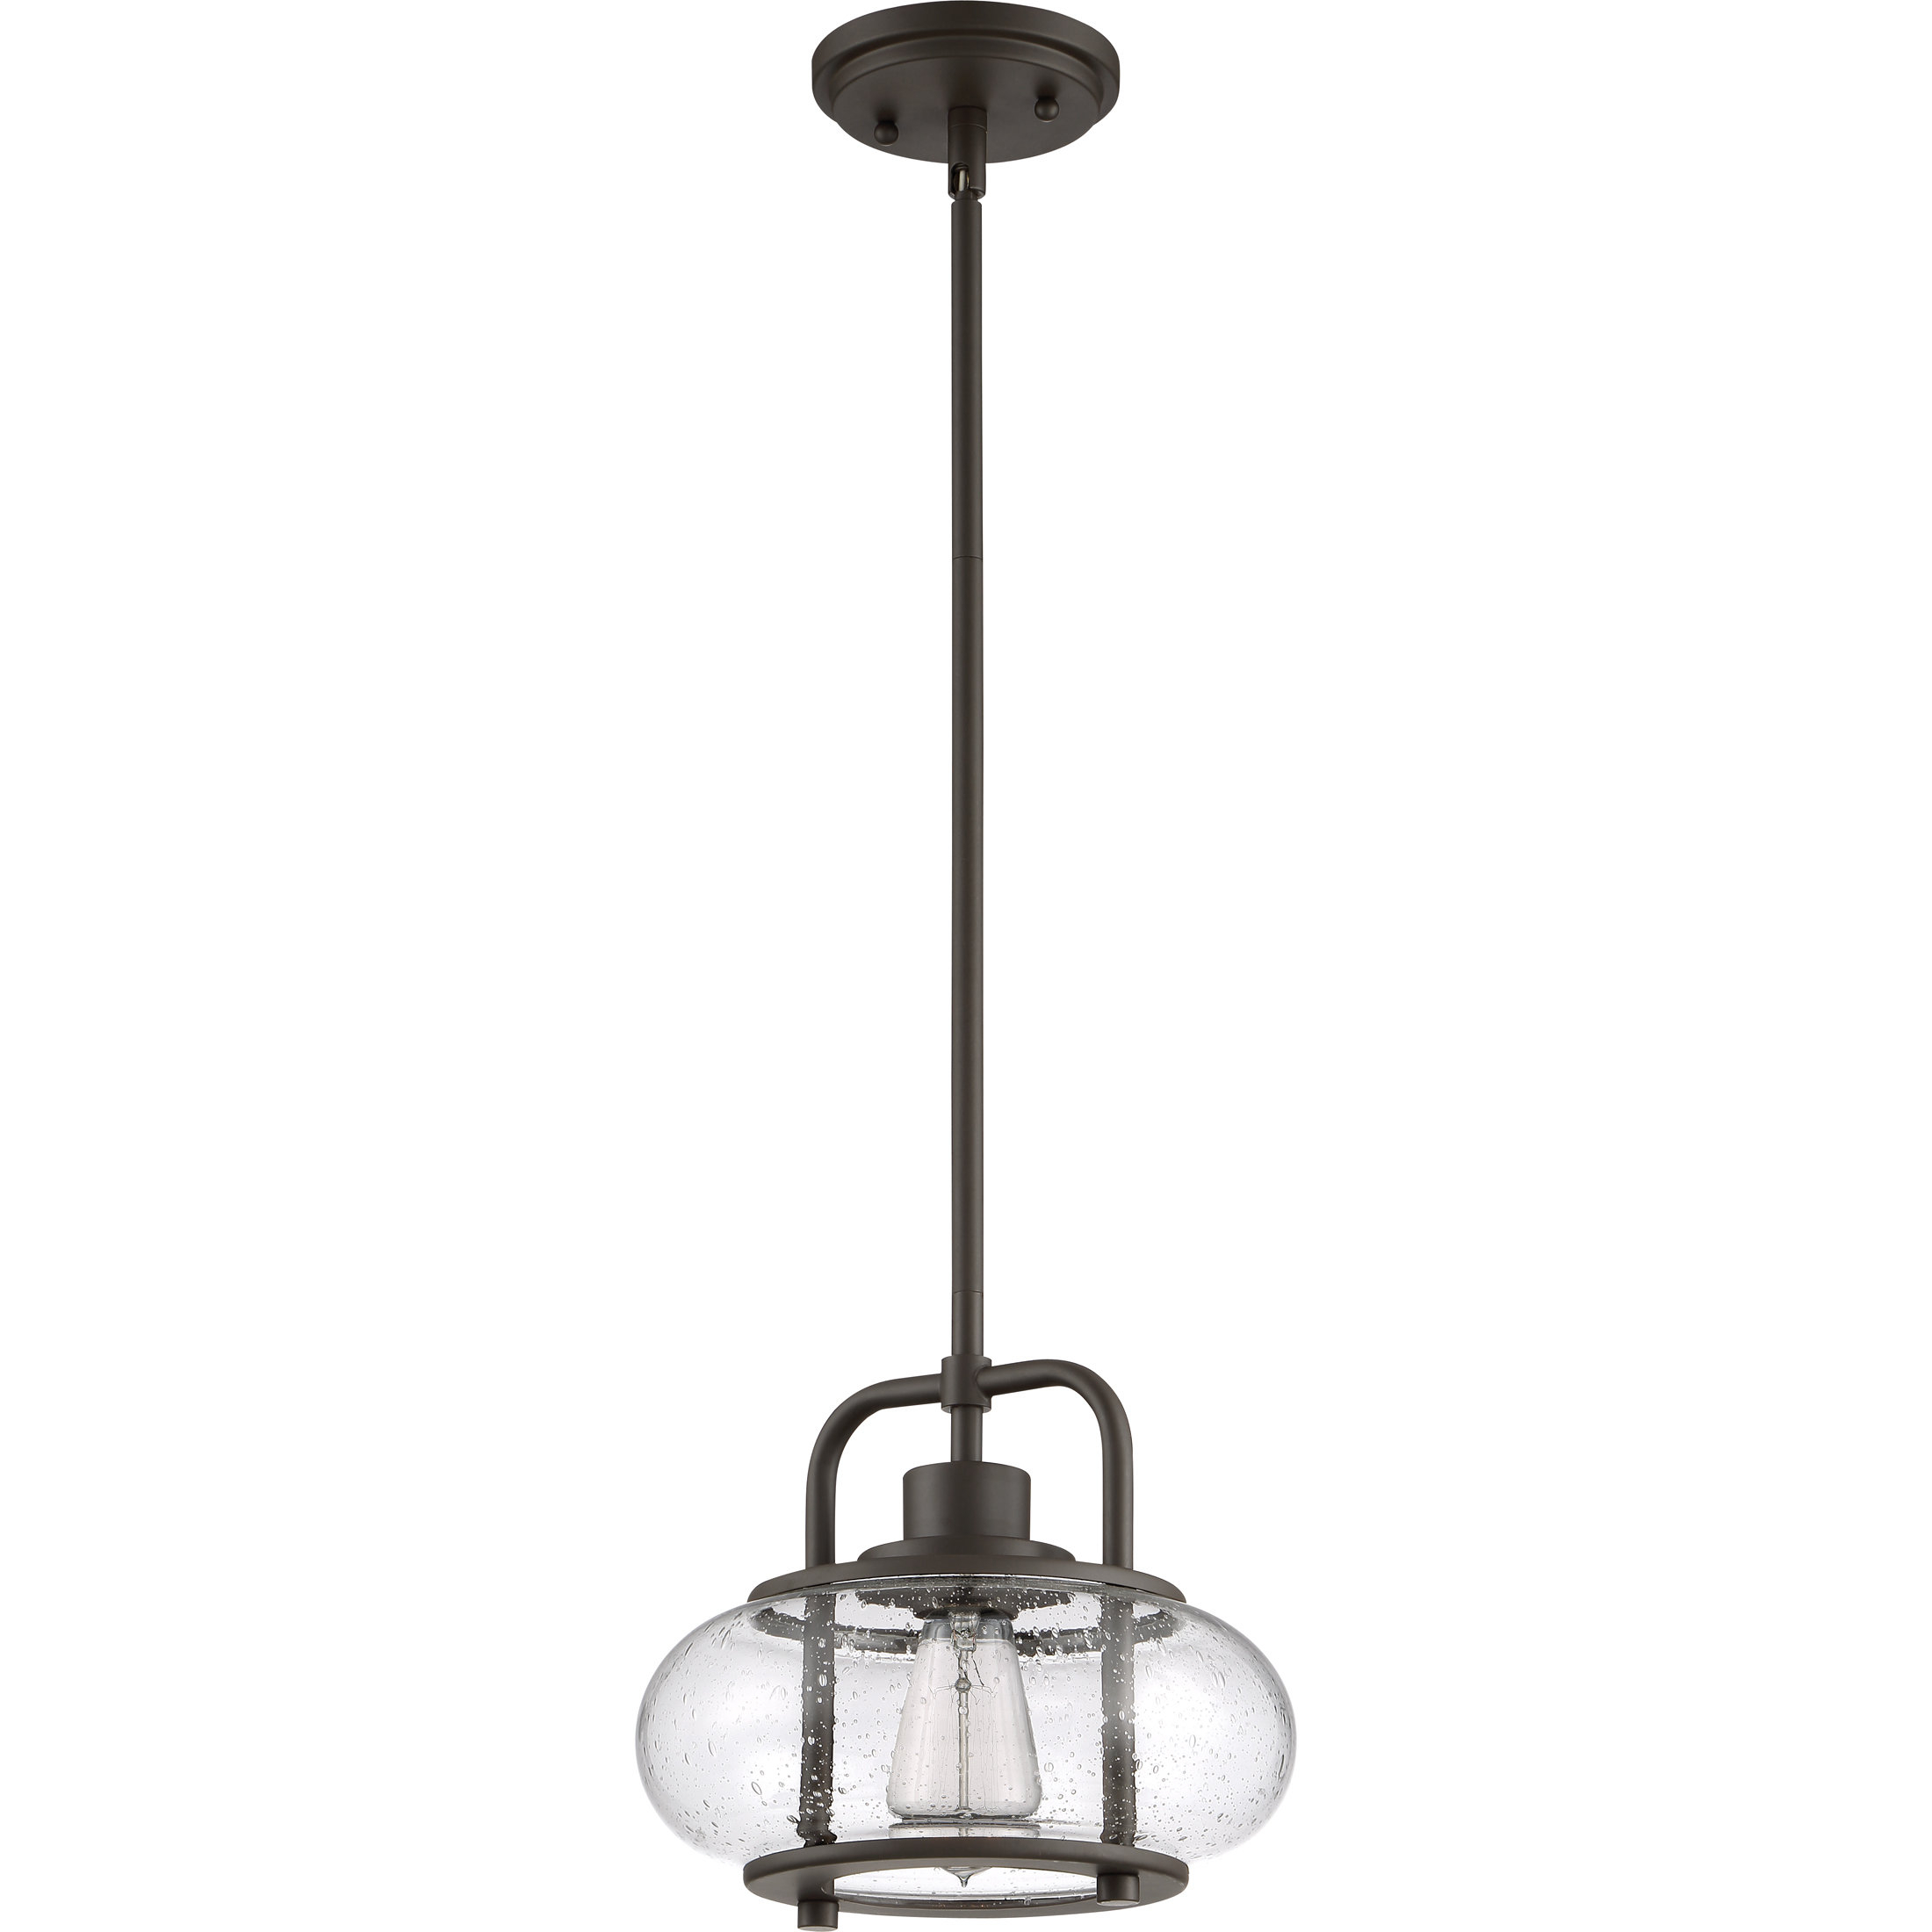 Terry 1 Light Single Bell Pendants Throughout Newest Braxton 1 Light Single Schoolhouse Pendant (View 20 of 20)